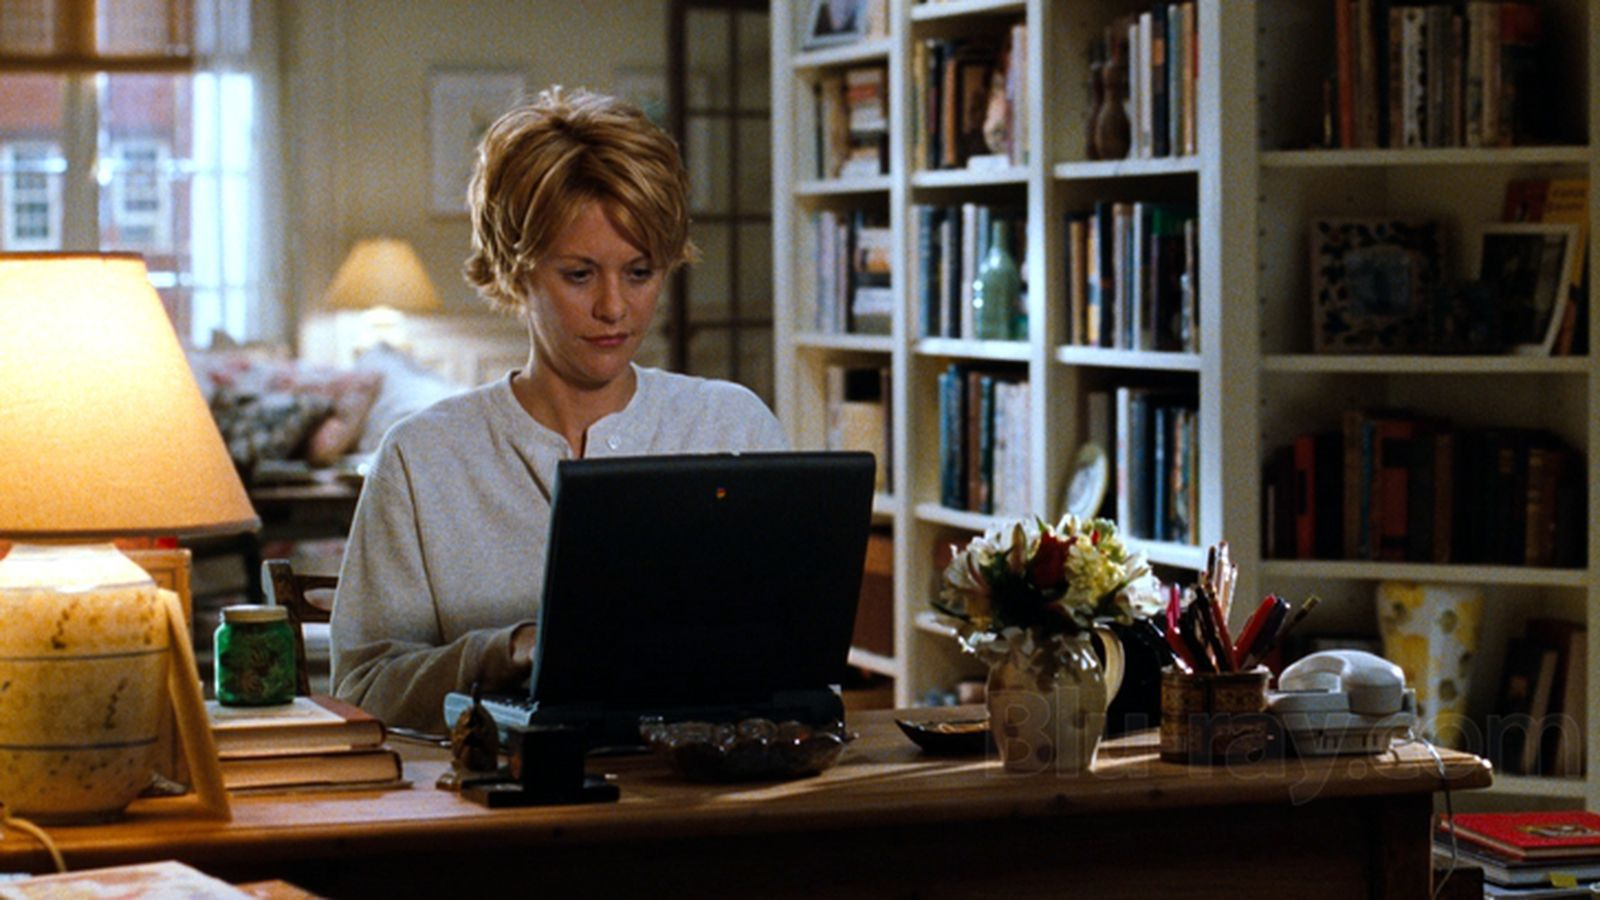 Meg Ryan in You've Got Mail. Kathleen types at her laptop in her home. She looks curious.